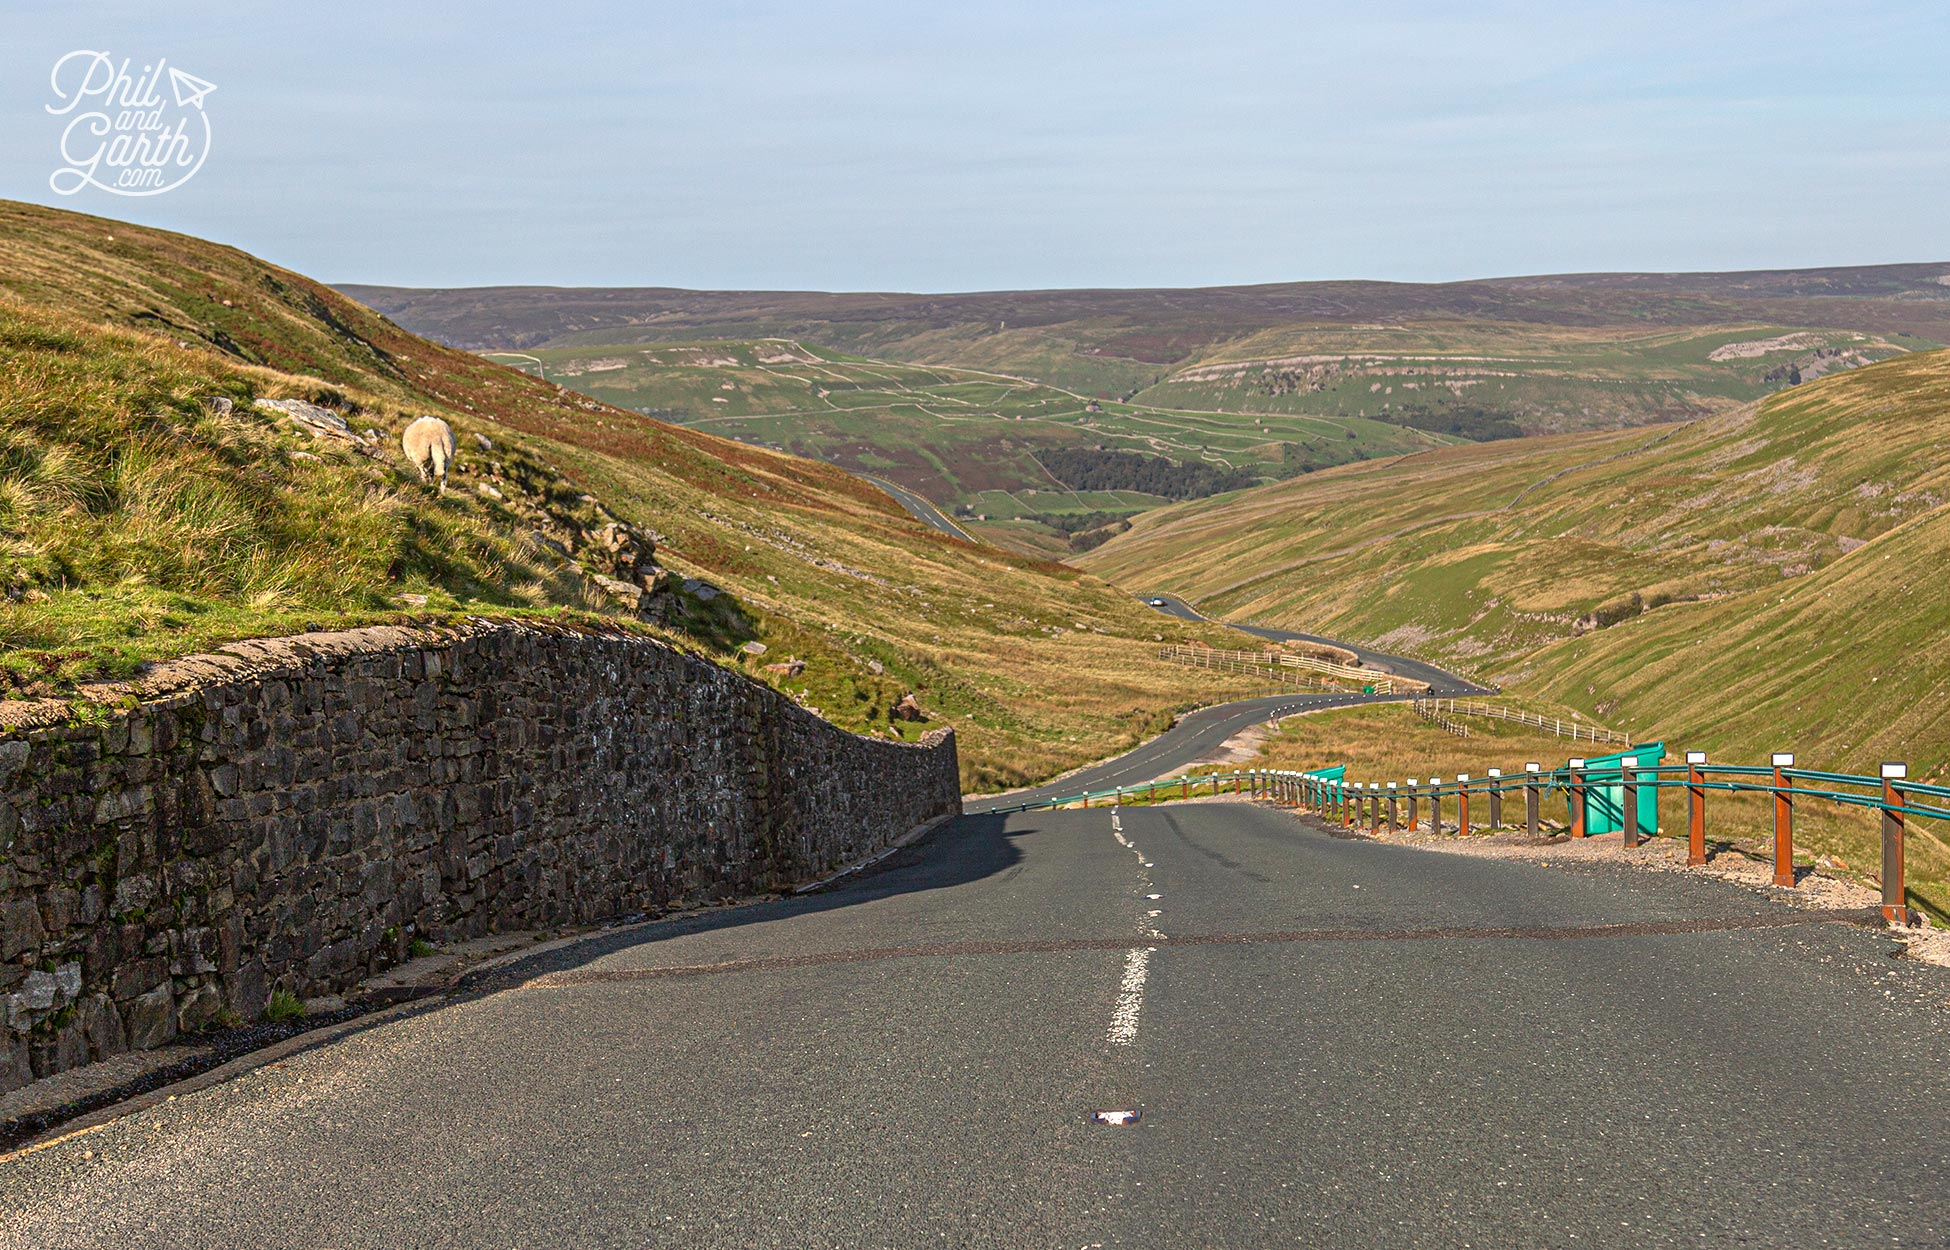 The Buttertubs Pass is one of the top scenic roads in the Yorkshire Dales